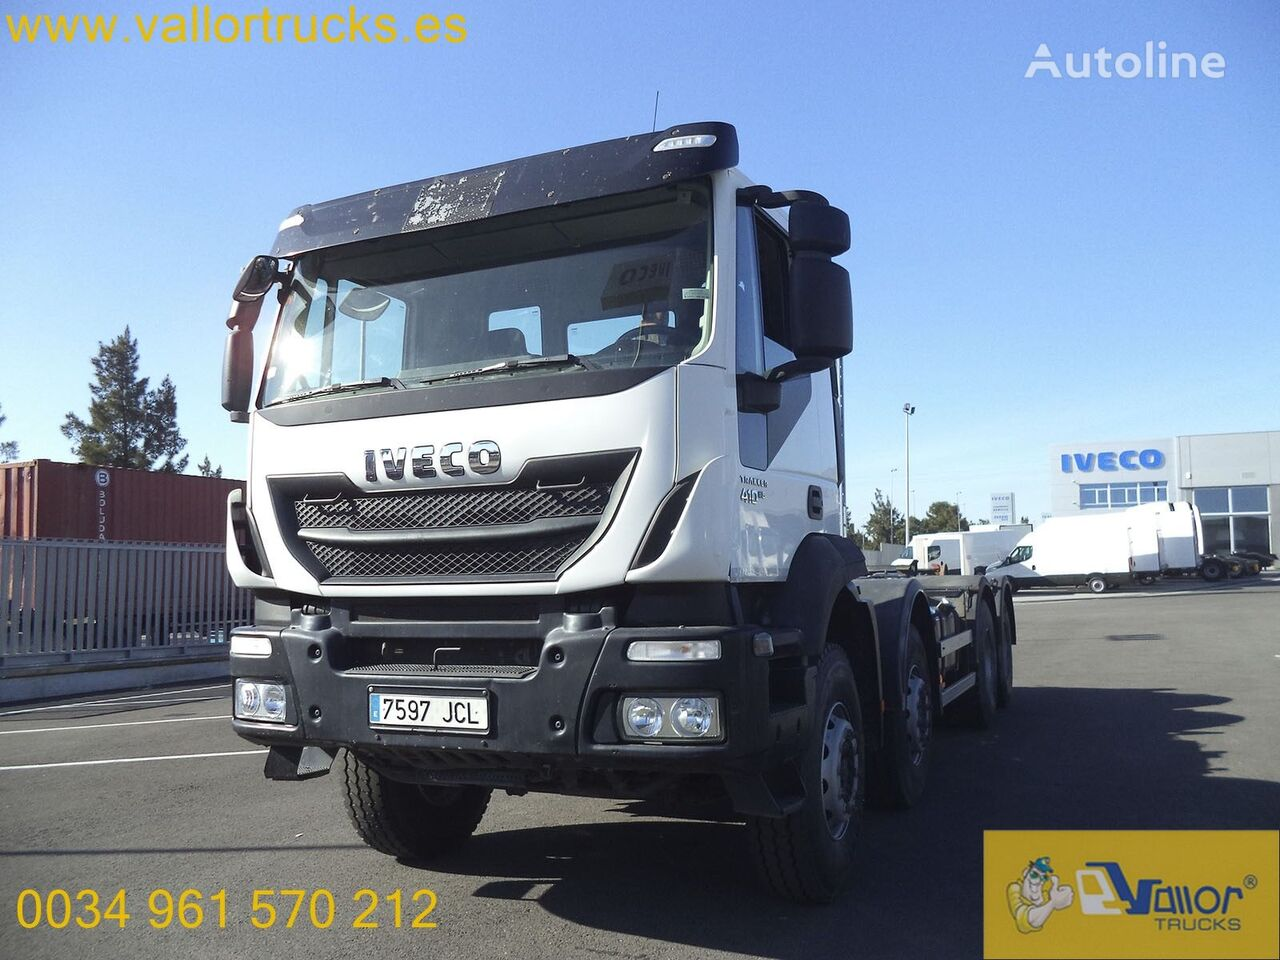 IVECO Stralis AD340T41 hook lift truck